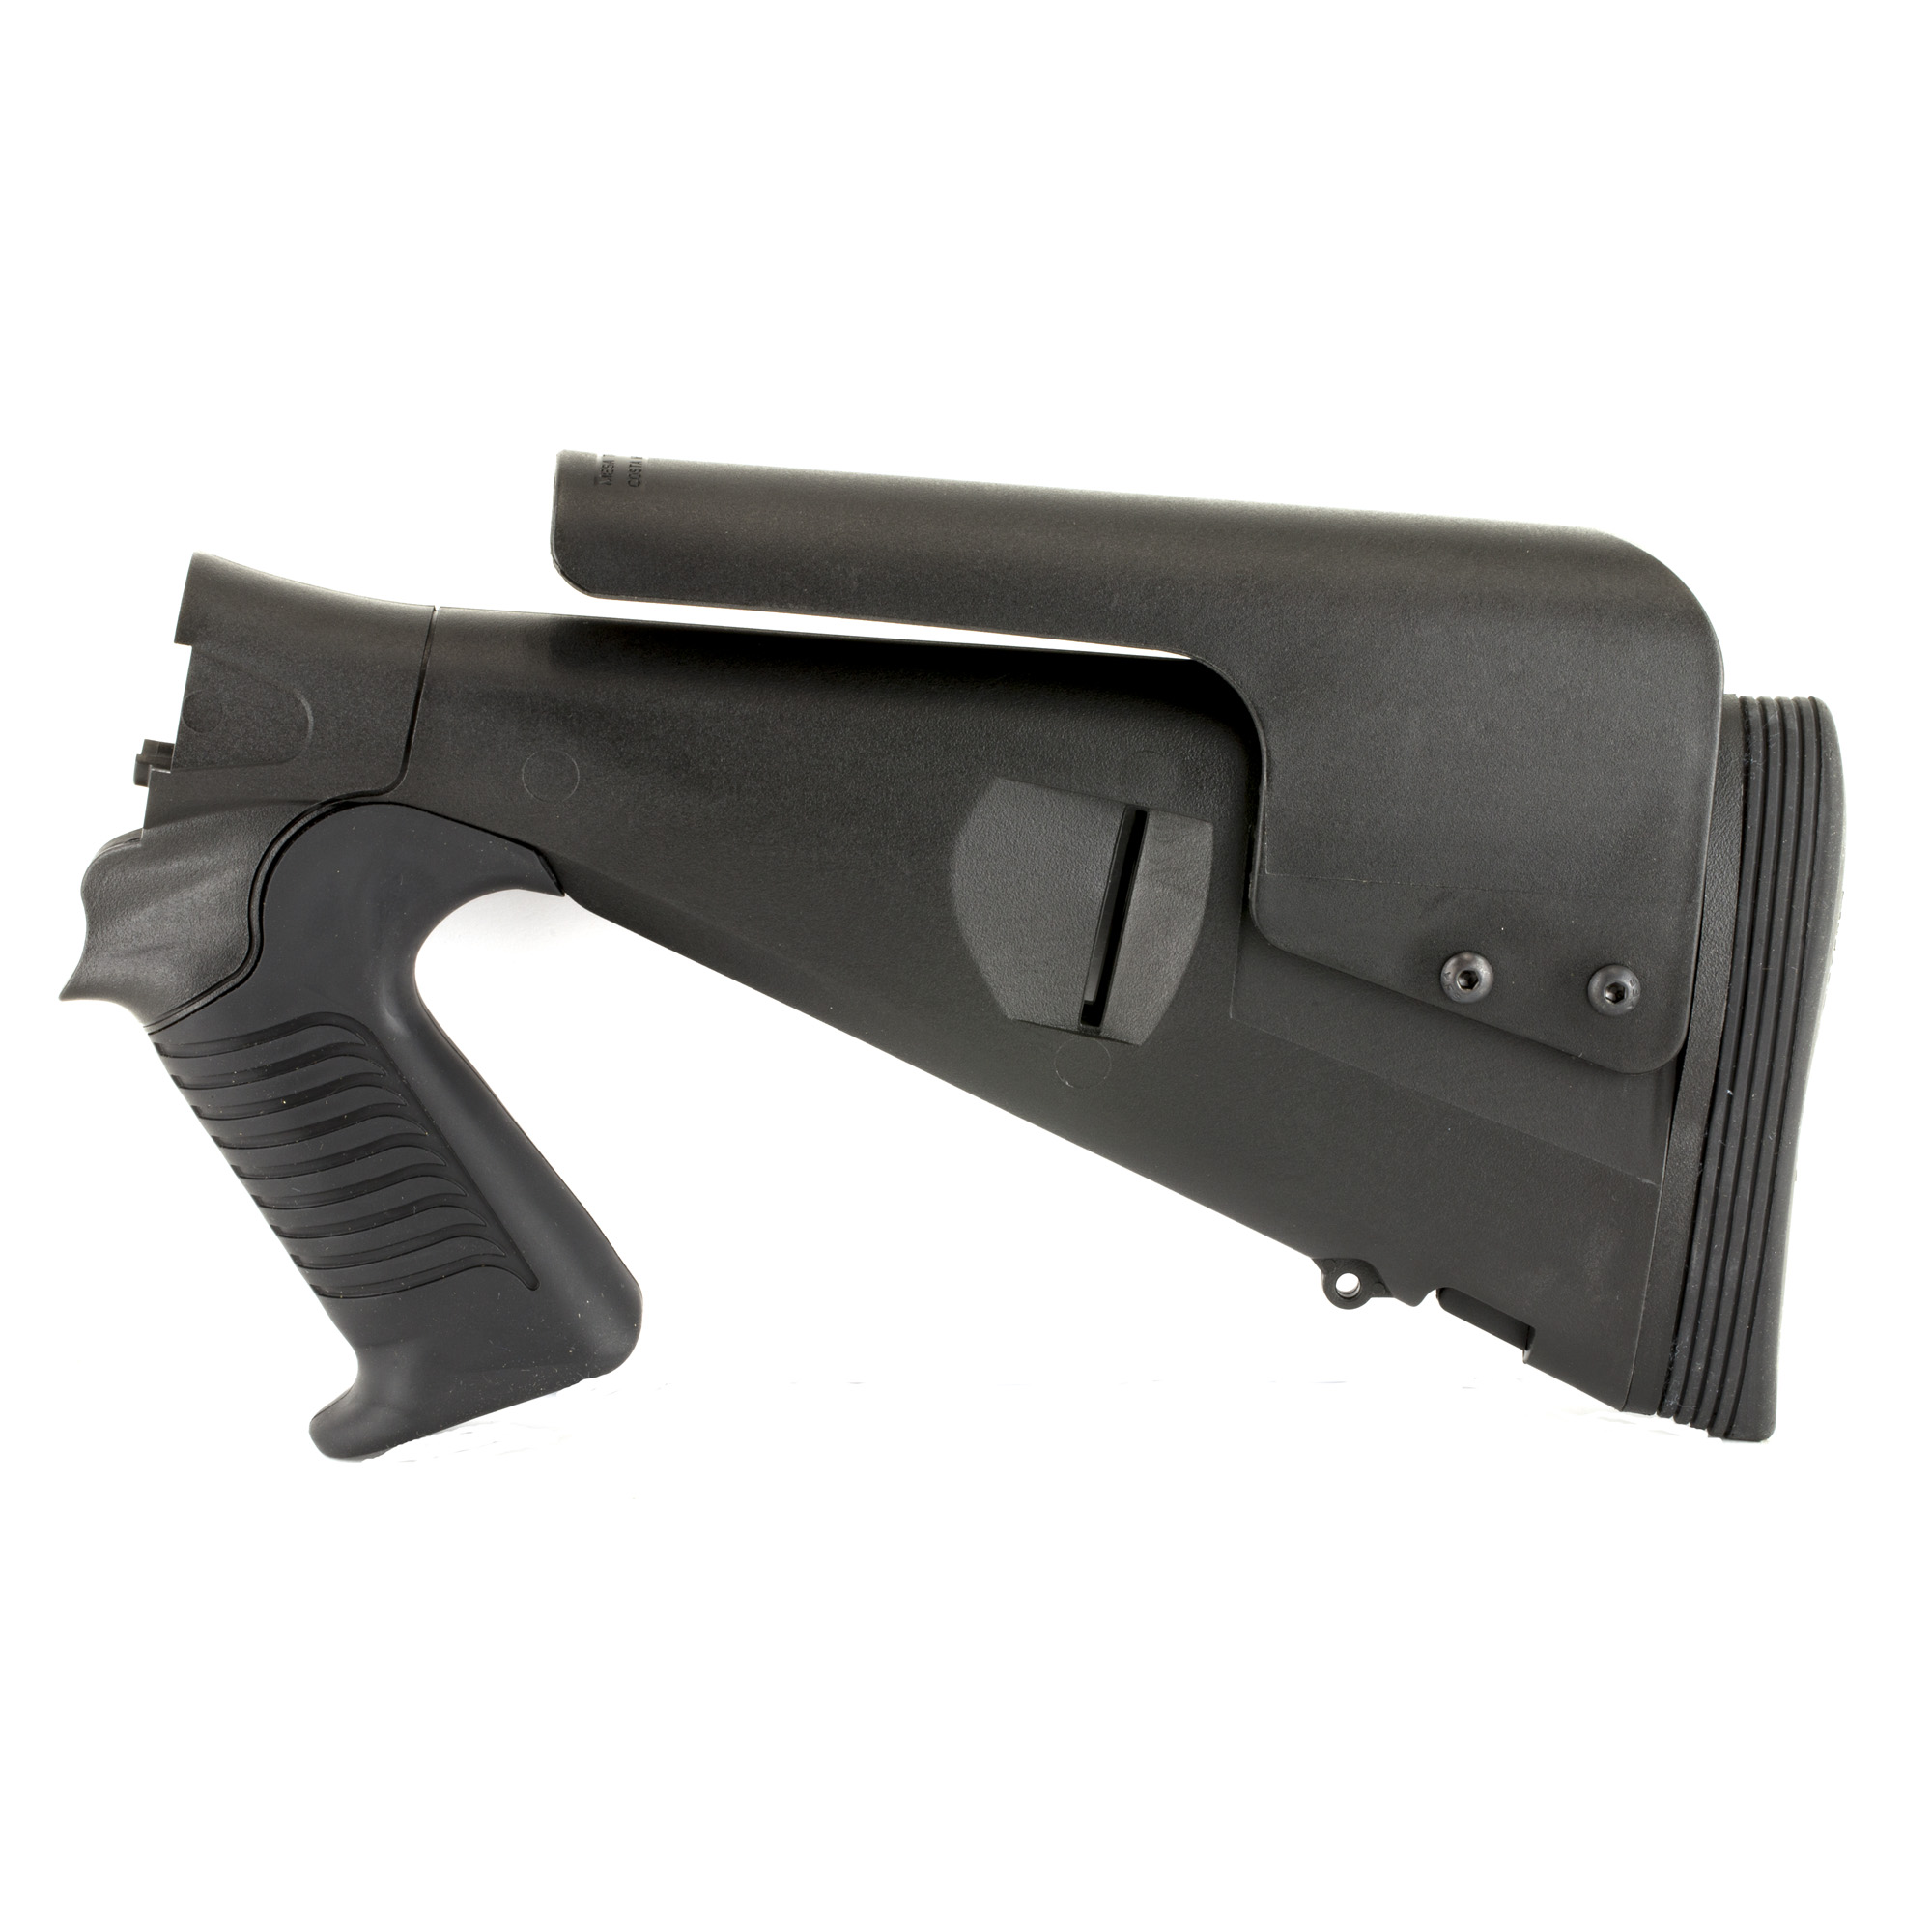 """Mesa Tactical's Urbino Pistol Grip Stock for the Beretta 1301 12 Gauge is very popular in the law enforcement market due to the shorter length of pull"""" allowing the user to wear body armor or bulky clothing without extending their reach. The reduced length-of-pull (LoP) makes the Urbino the first truly tactical stock for the Beretta 1301. The Urbino Tactical stock is durable"""" easy to shoulder and will not slip. It is a fixed-length pistol grip shotgun stock made from injection-molded glass-filled nylon. Developed to meet the needs of law enforcement and military operators"""" the rugged Urbino Tactical stock features a 12 1/2"""" inch LoP"""" soft urethane rubber grip"""" adjustable cheek riser and Limbsaver Butt pad."""